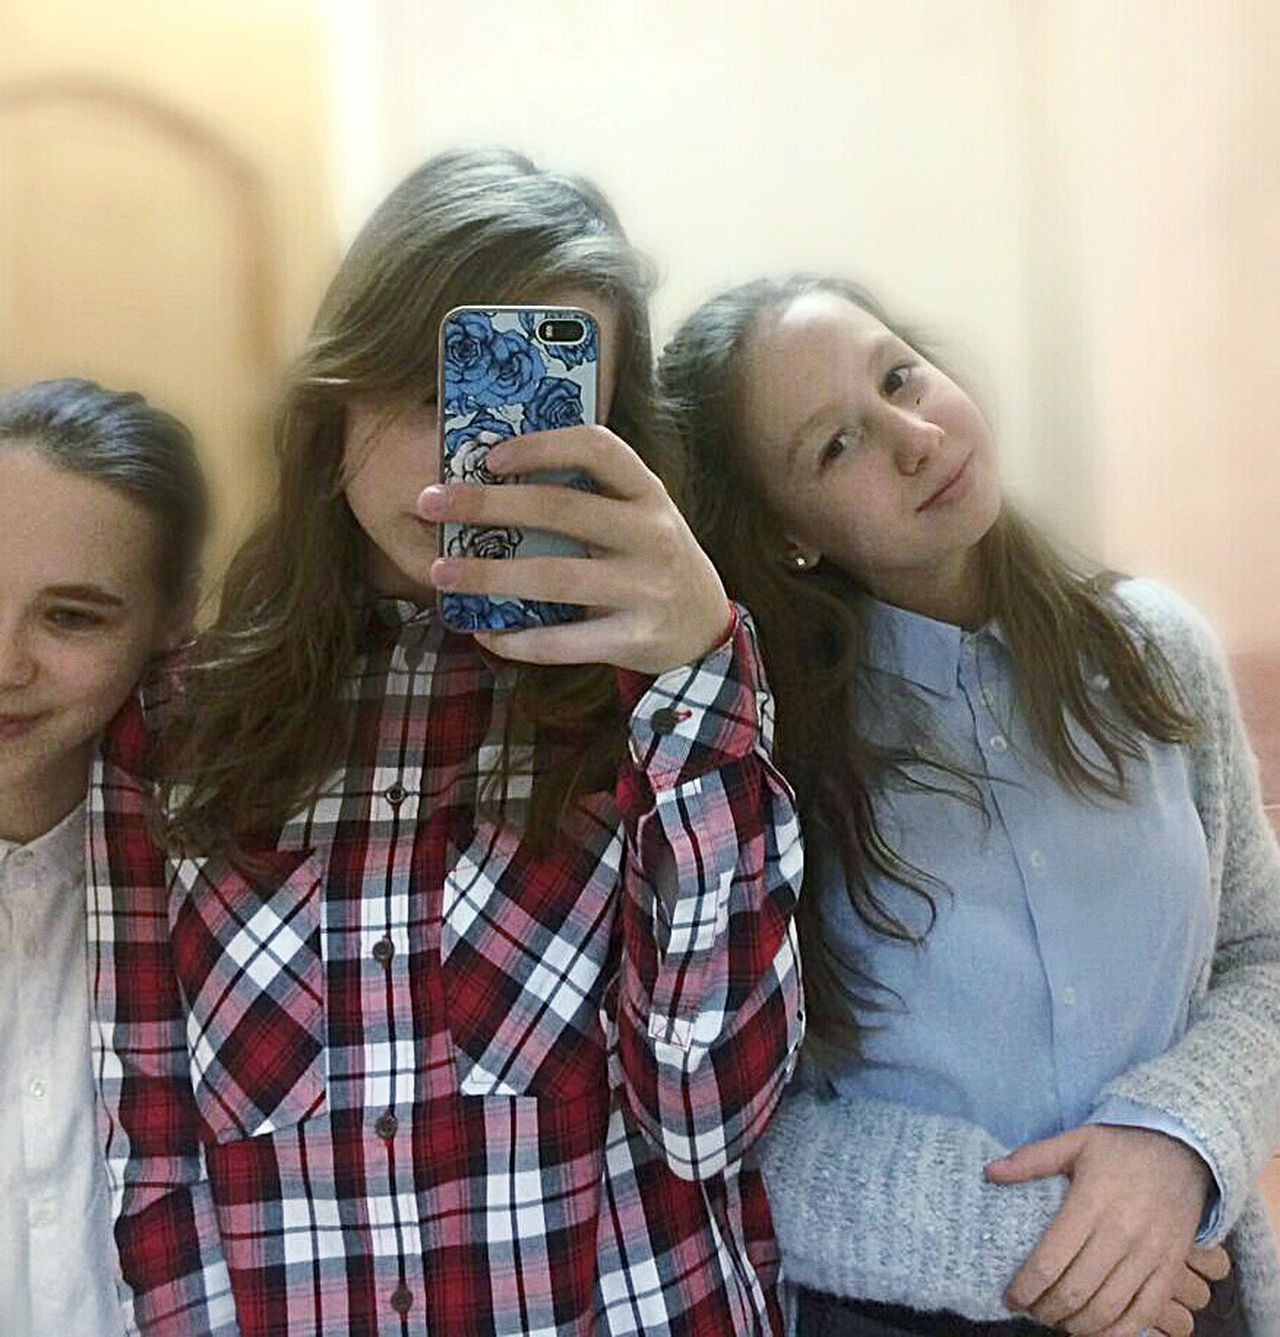 Portable Information Device Smart Phone Wireless Technology Mobile Phone Teenager Photo Messaging Communication Photography Themes Photographing Teenage Girls Friendship Digital Native Technology People Indoors  Togetherness Only Teenage Girls Smiling Day Selfie